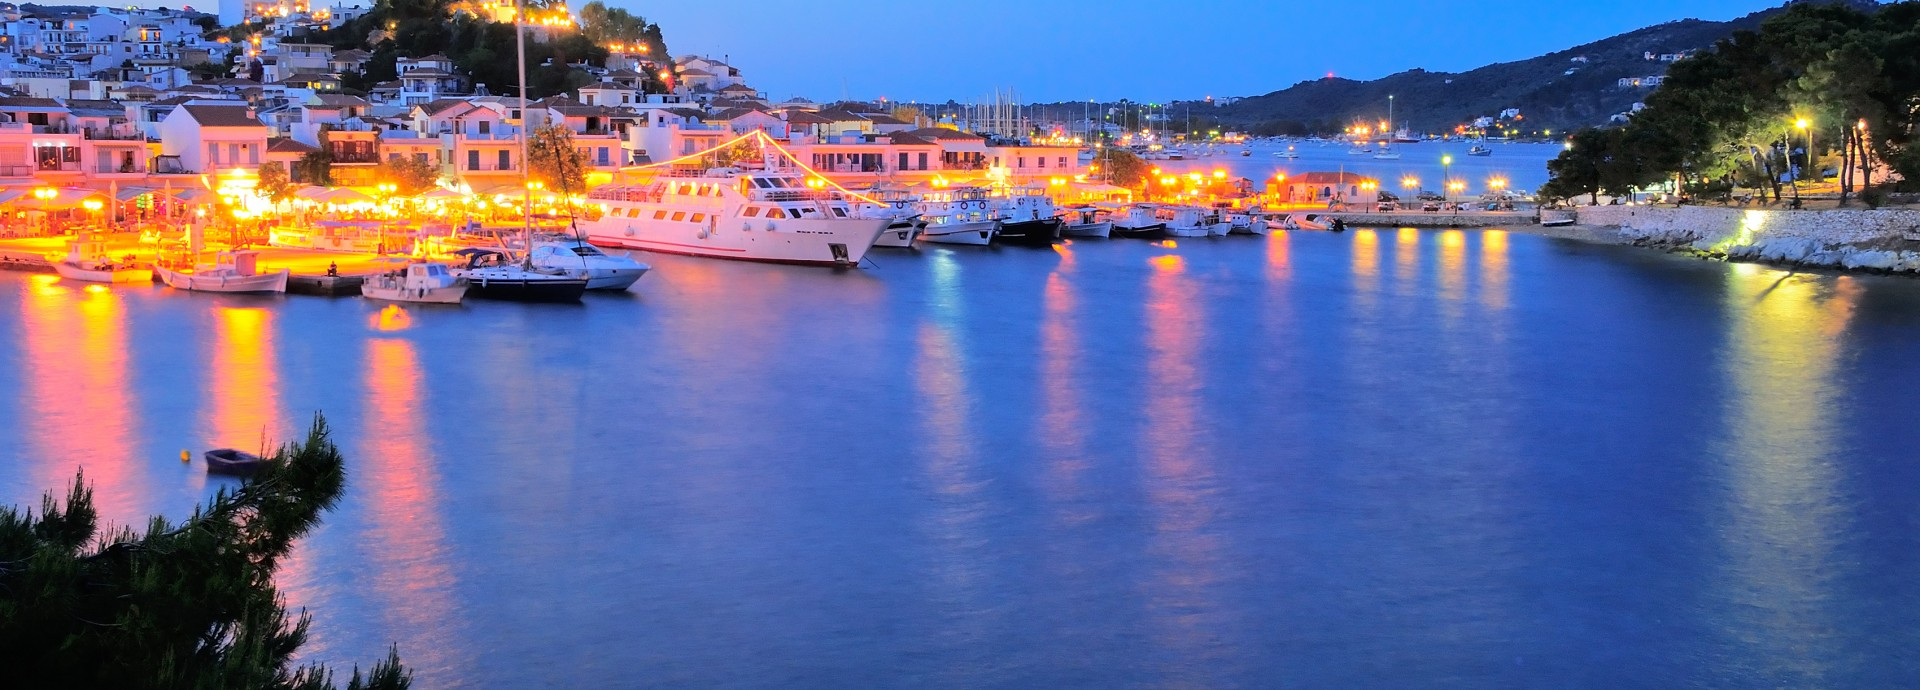 Skiathos town at night